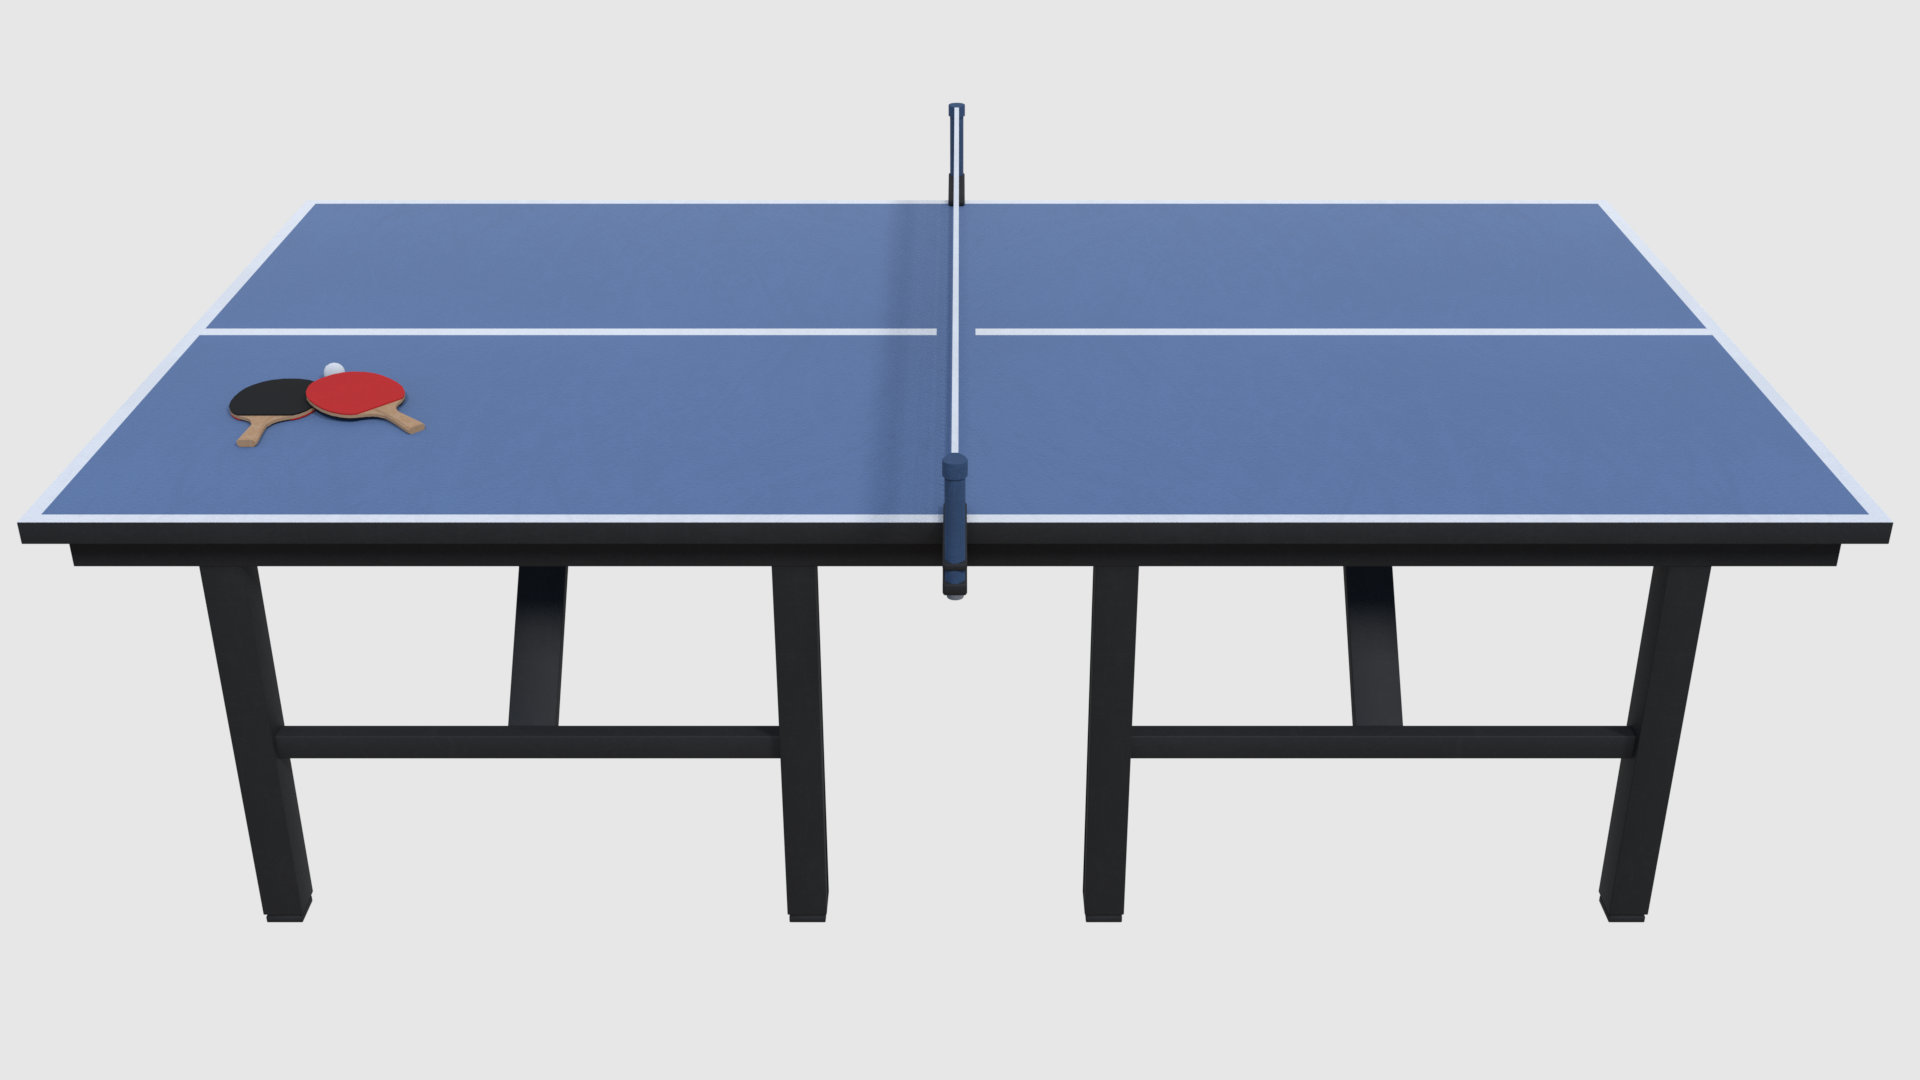 Ping pong PNG Images.